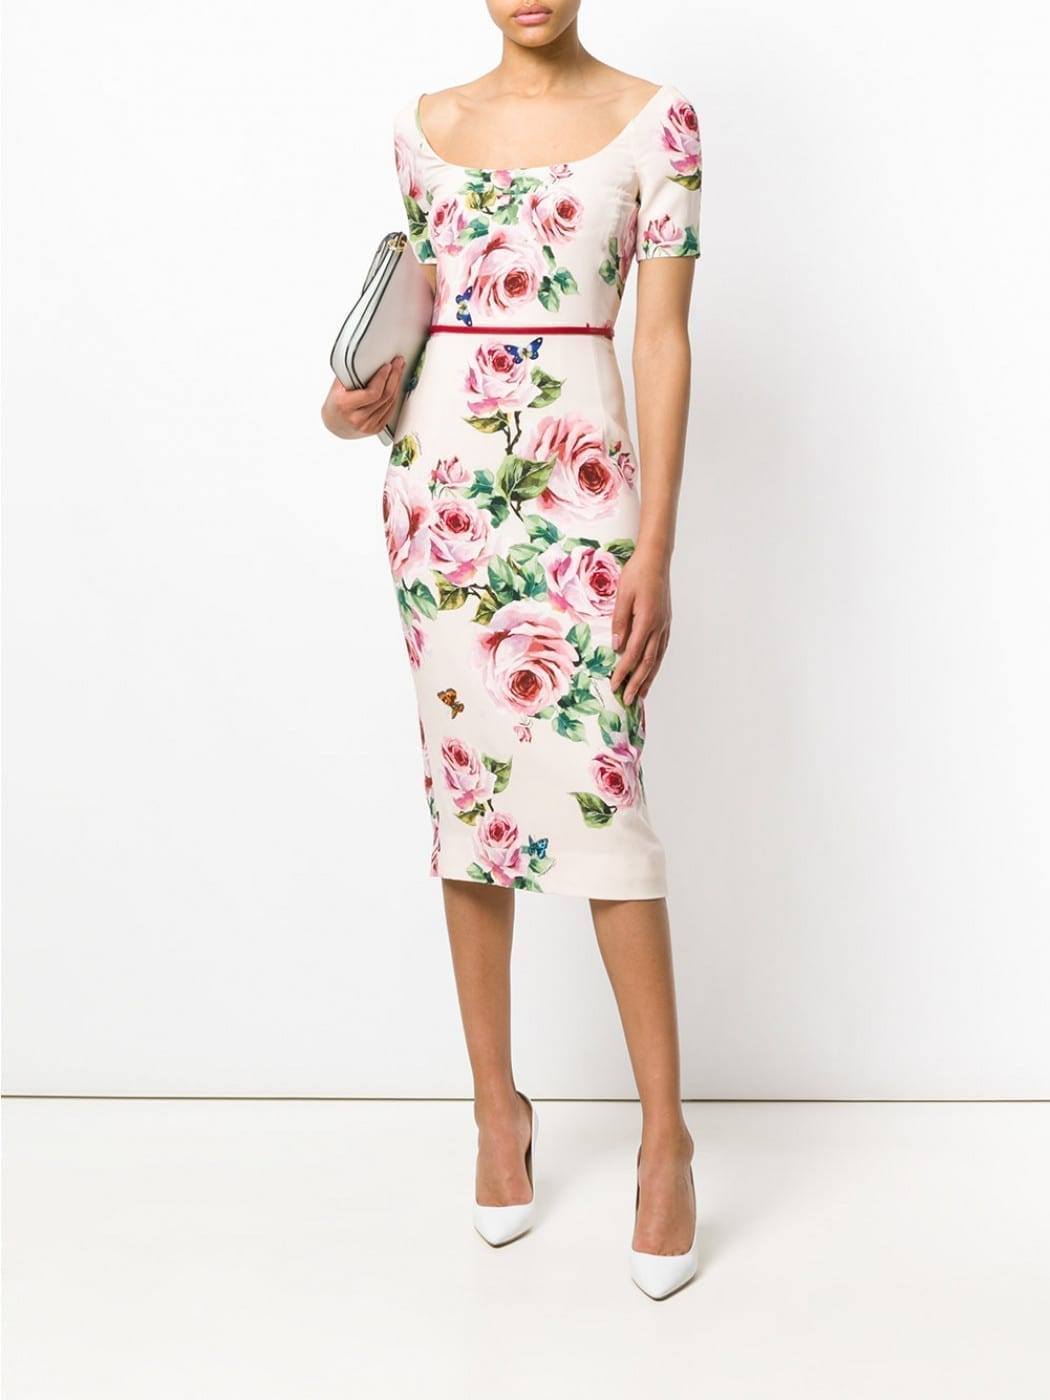 DOLCE & GABBANA Flower Print Light Pink Dress